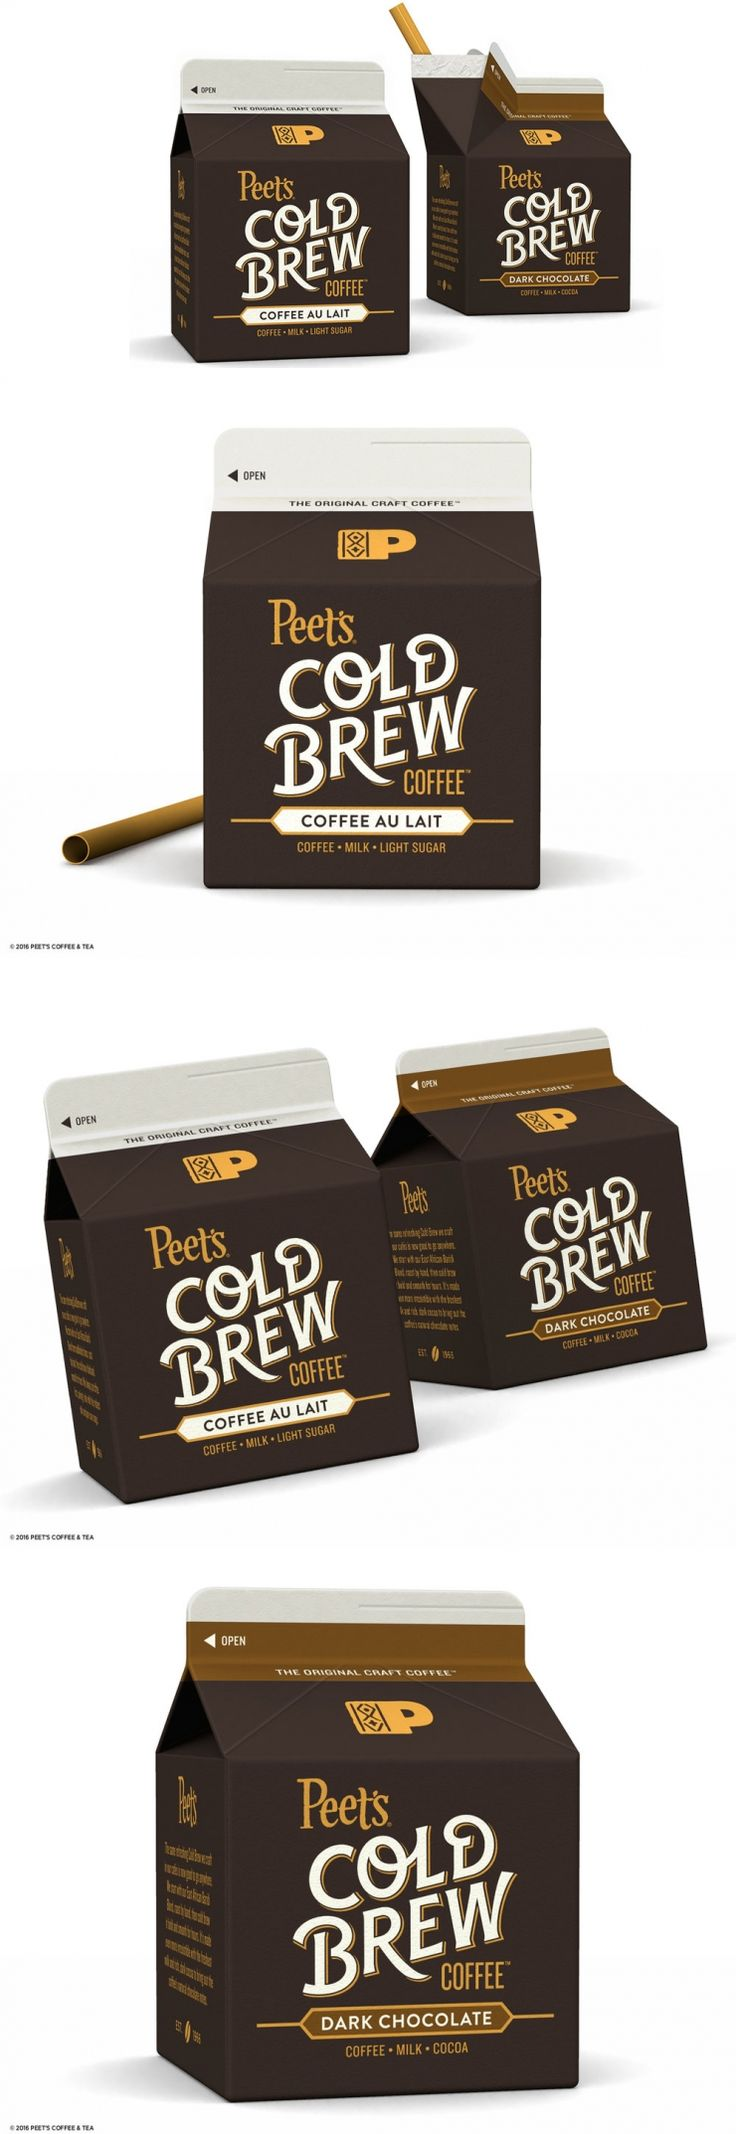 Peet's Cold Brew Coffee — The Dieline | Packaging & Branding Design & Innovation News